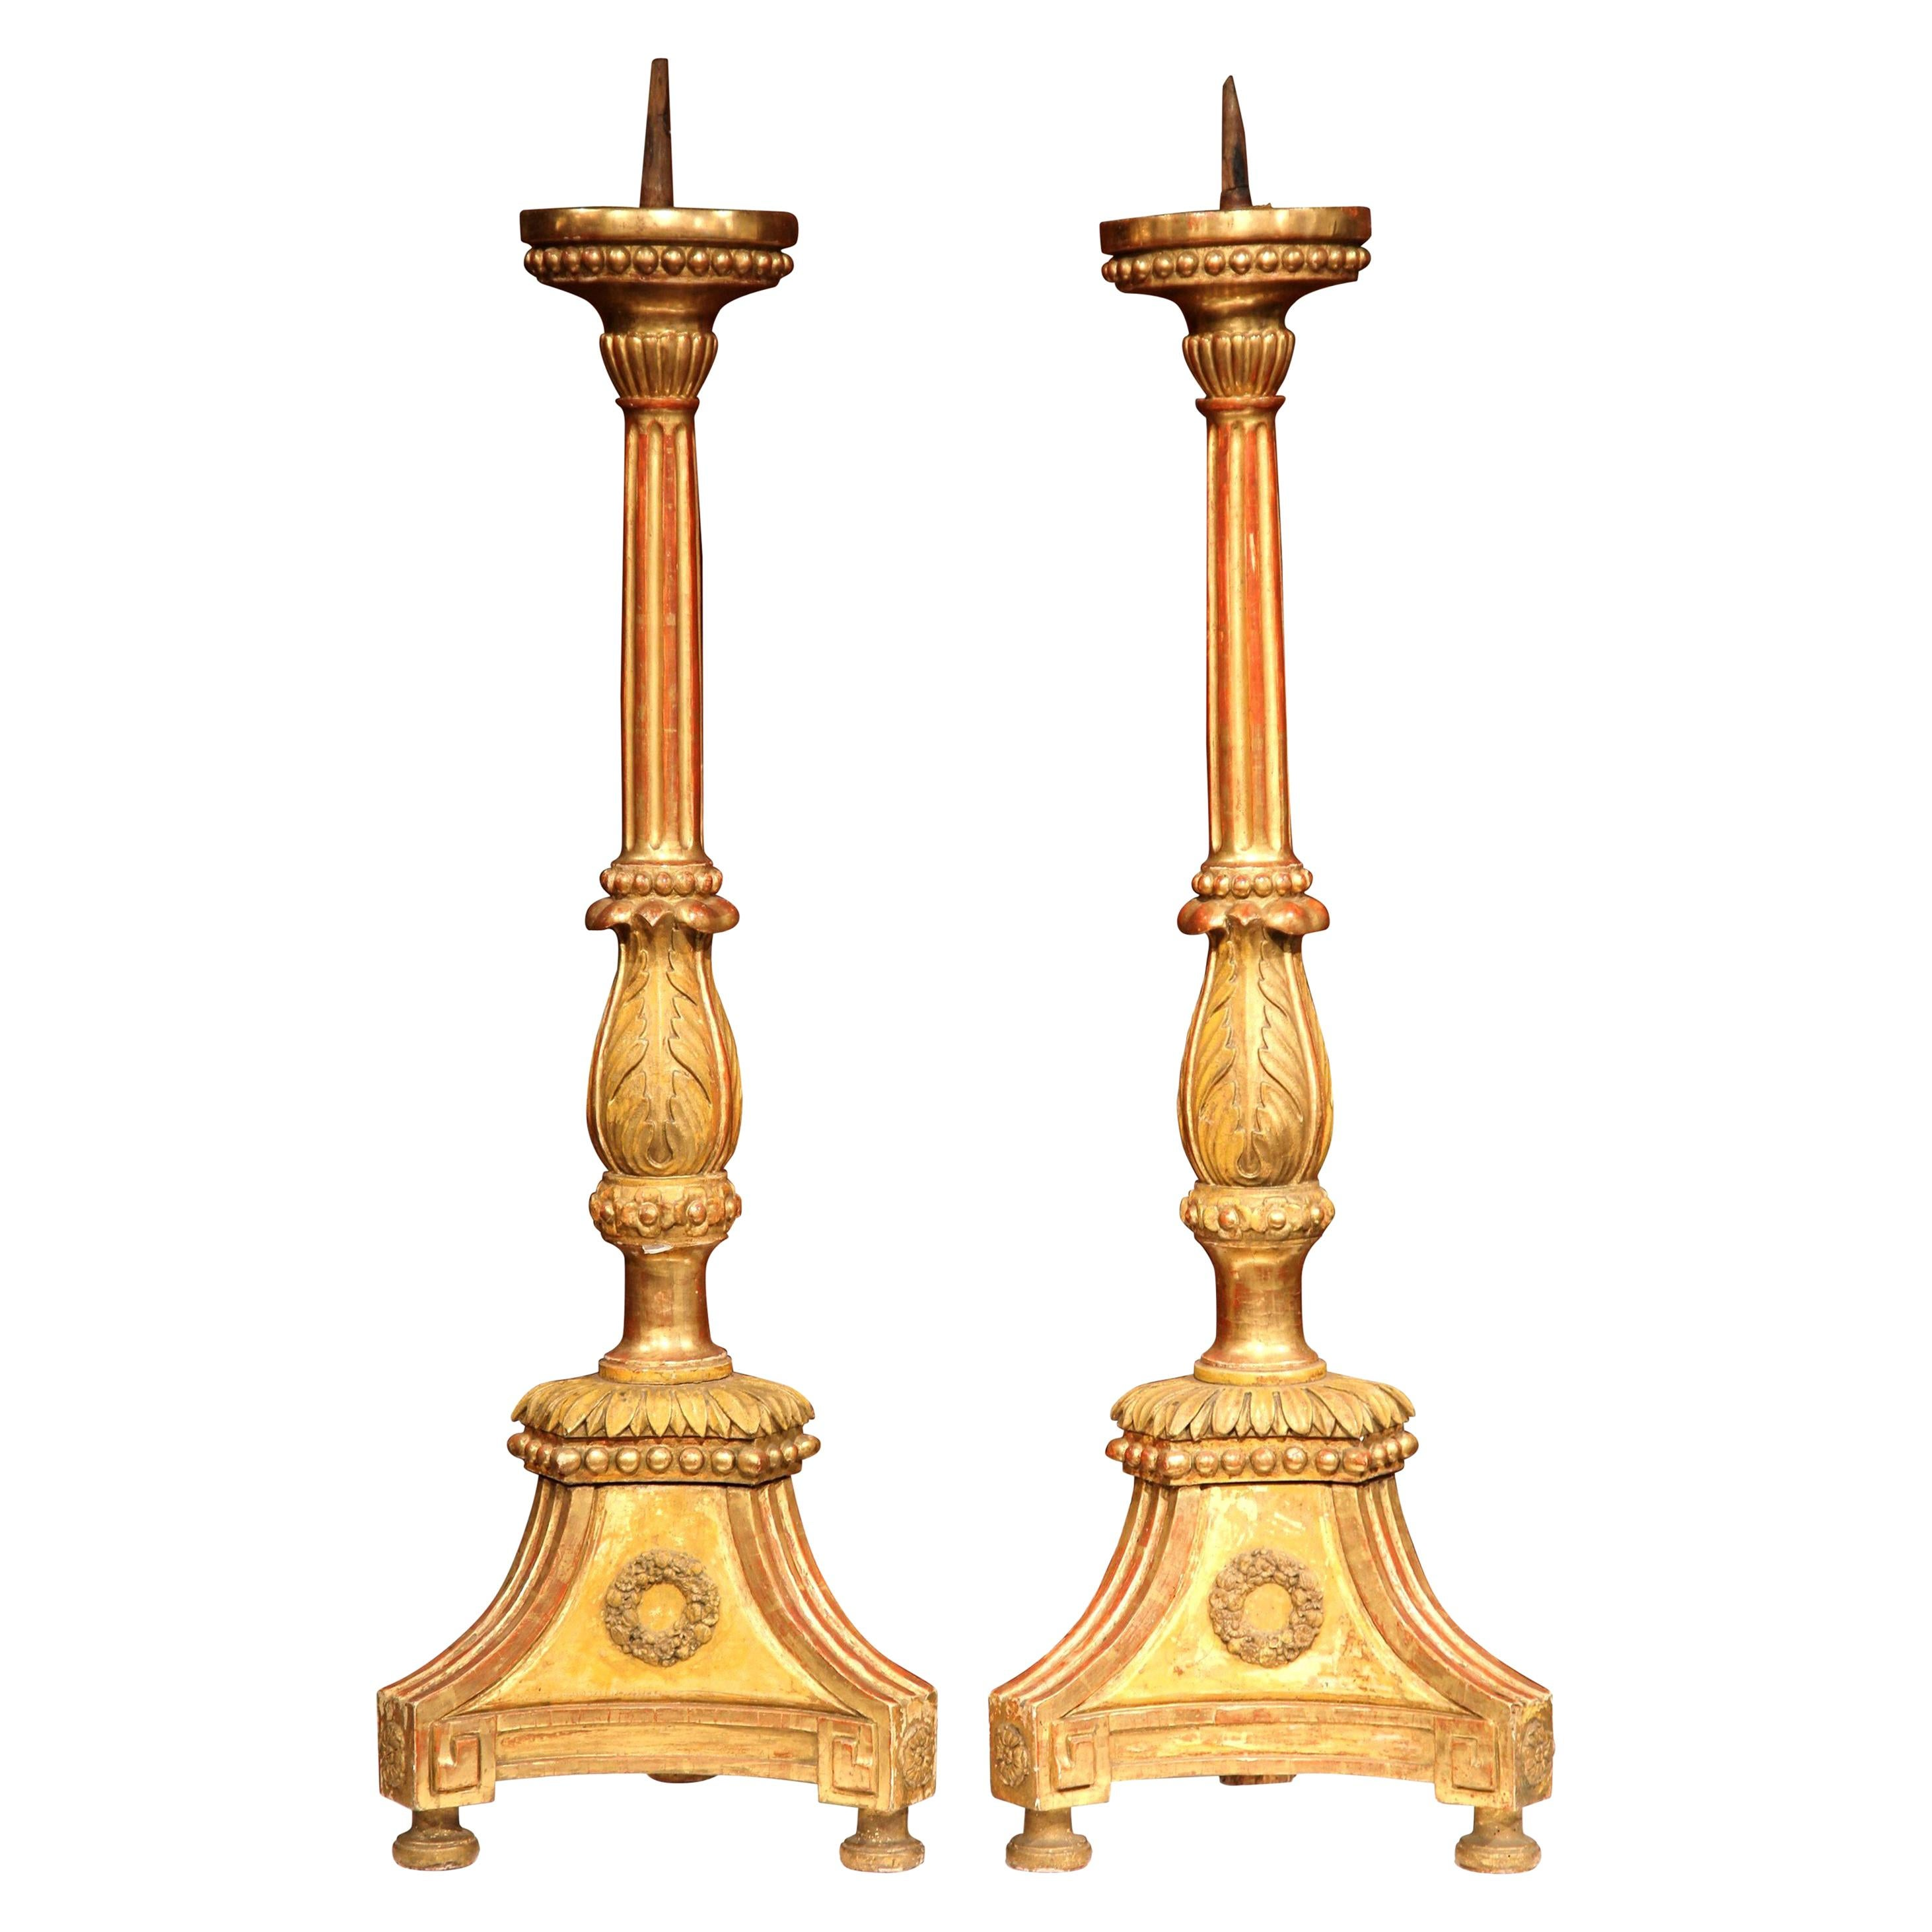 Pair of 19th Century Italian Carved Giltwood Prickets Altar Candlesticks